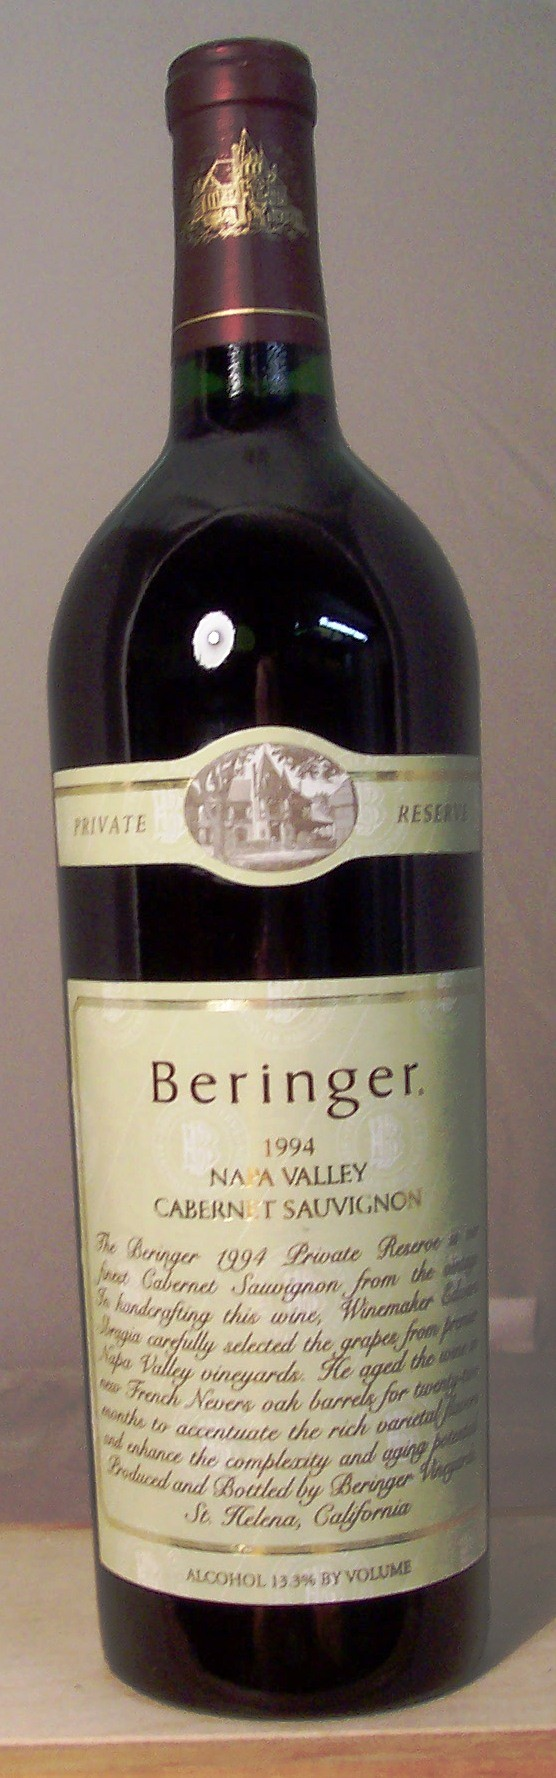 Beringer Vineyards Cabernet Sauvignon Private Reserve Napa Valley 1994